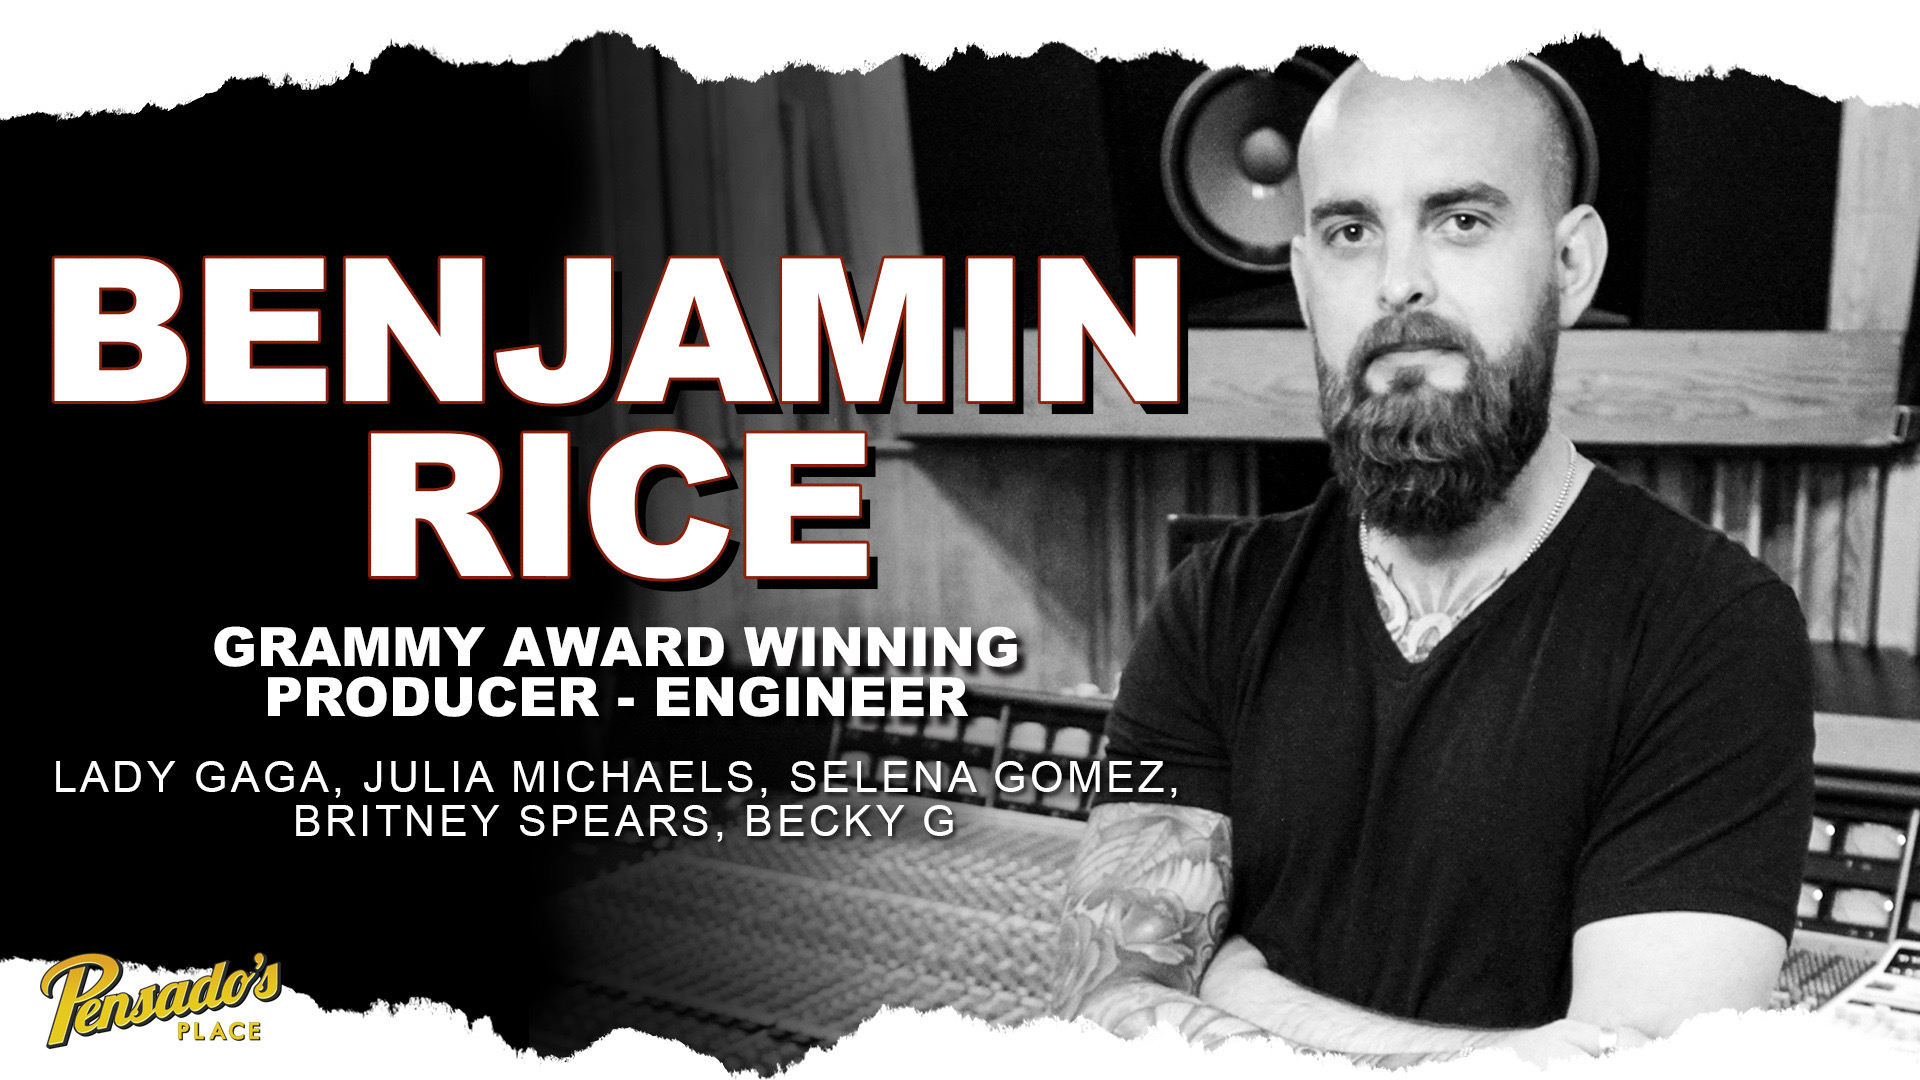 Grammy Winning Producer / Engineer, Benjamin Rice